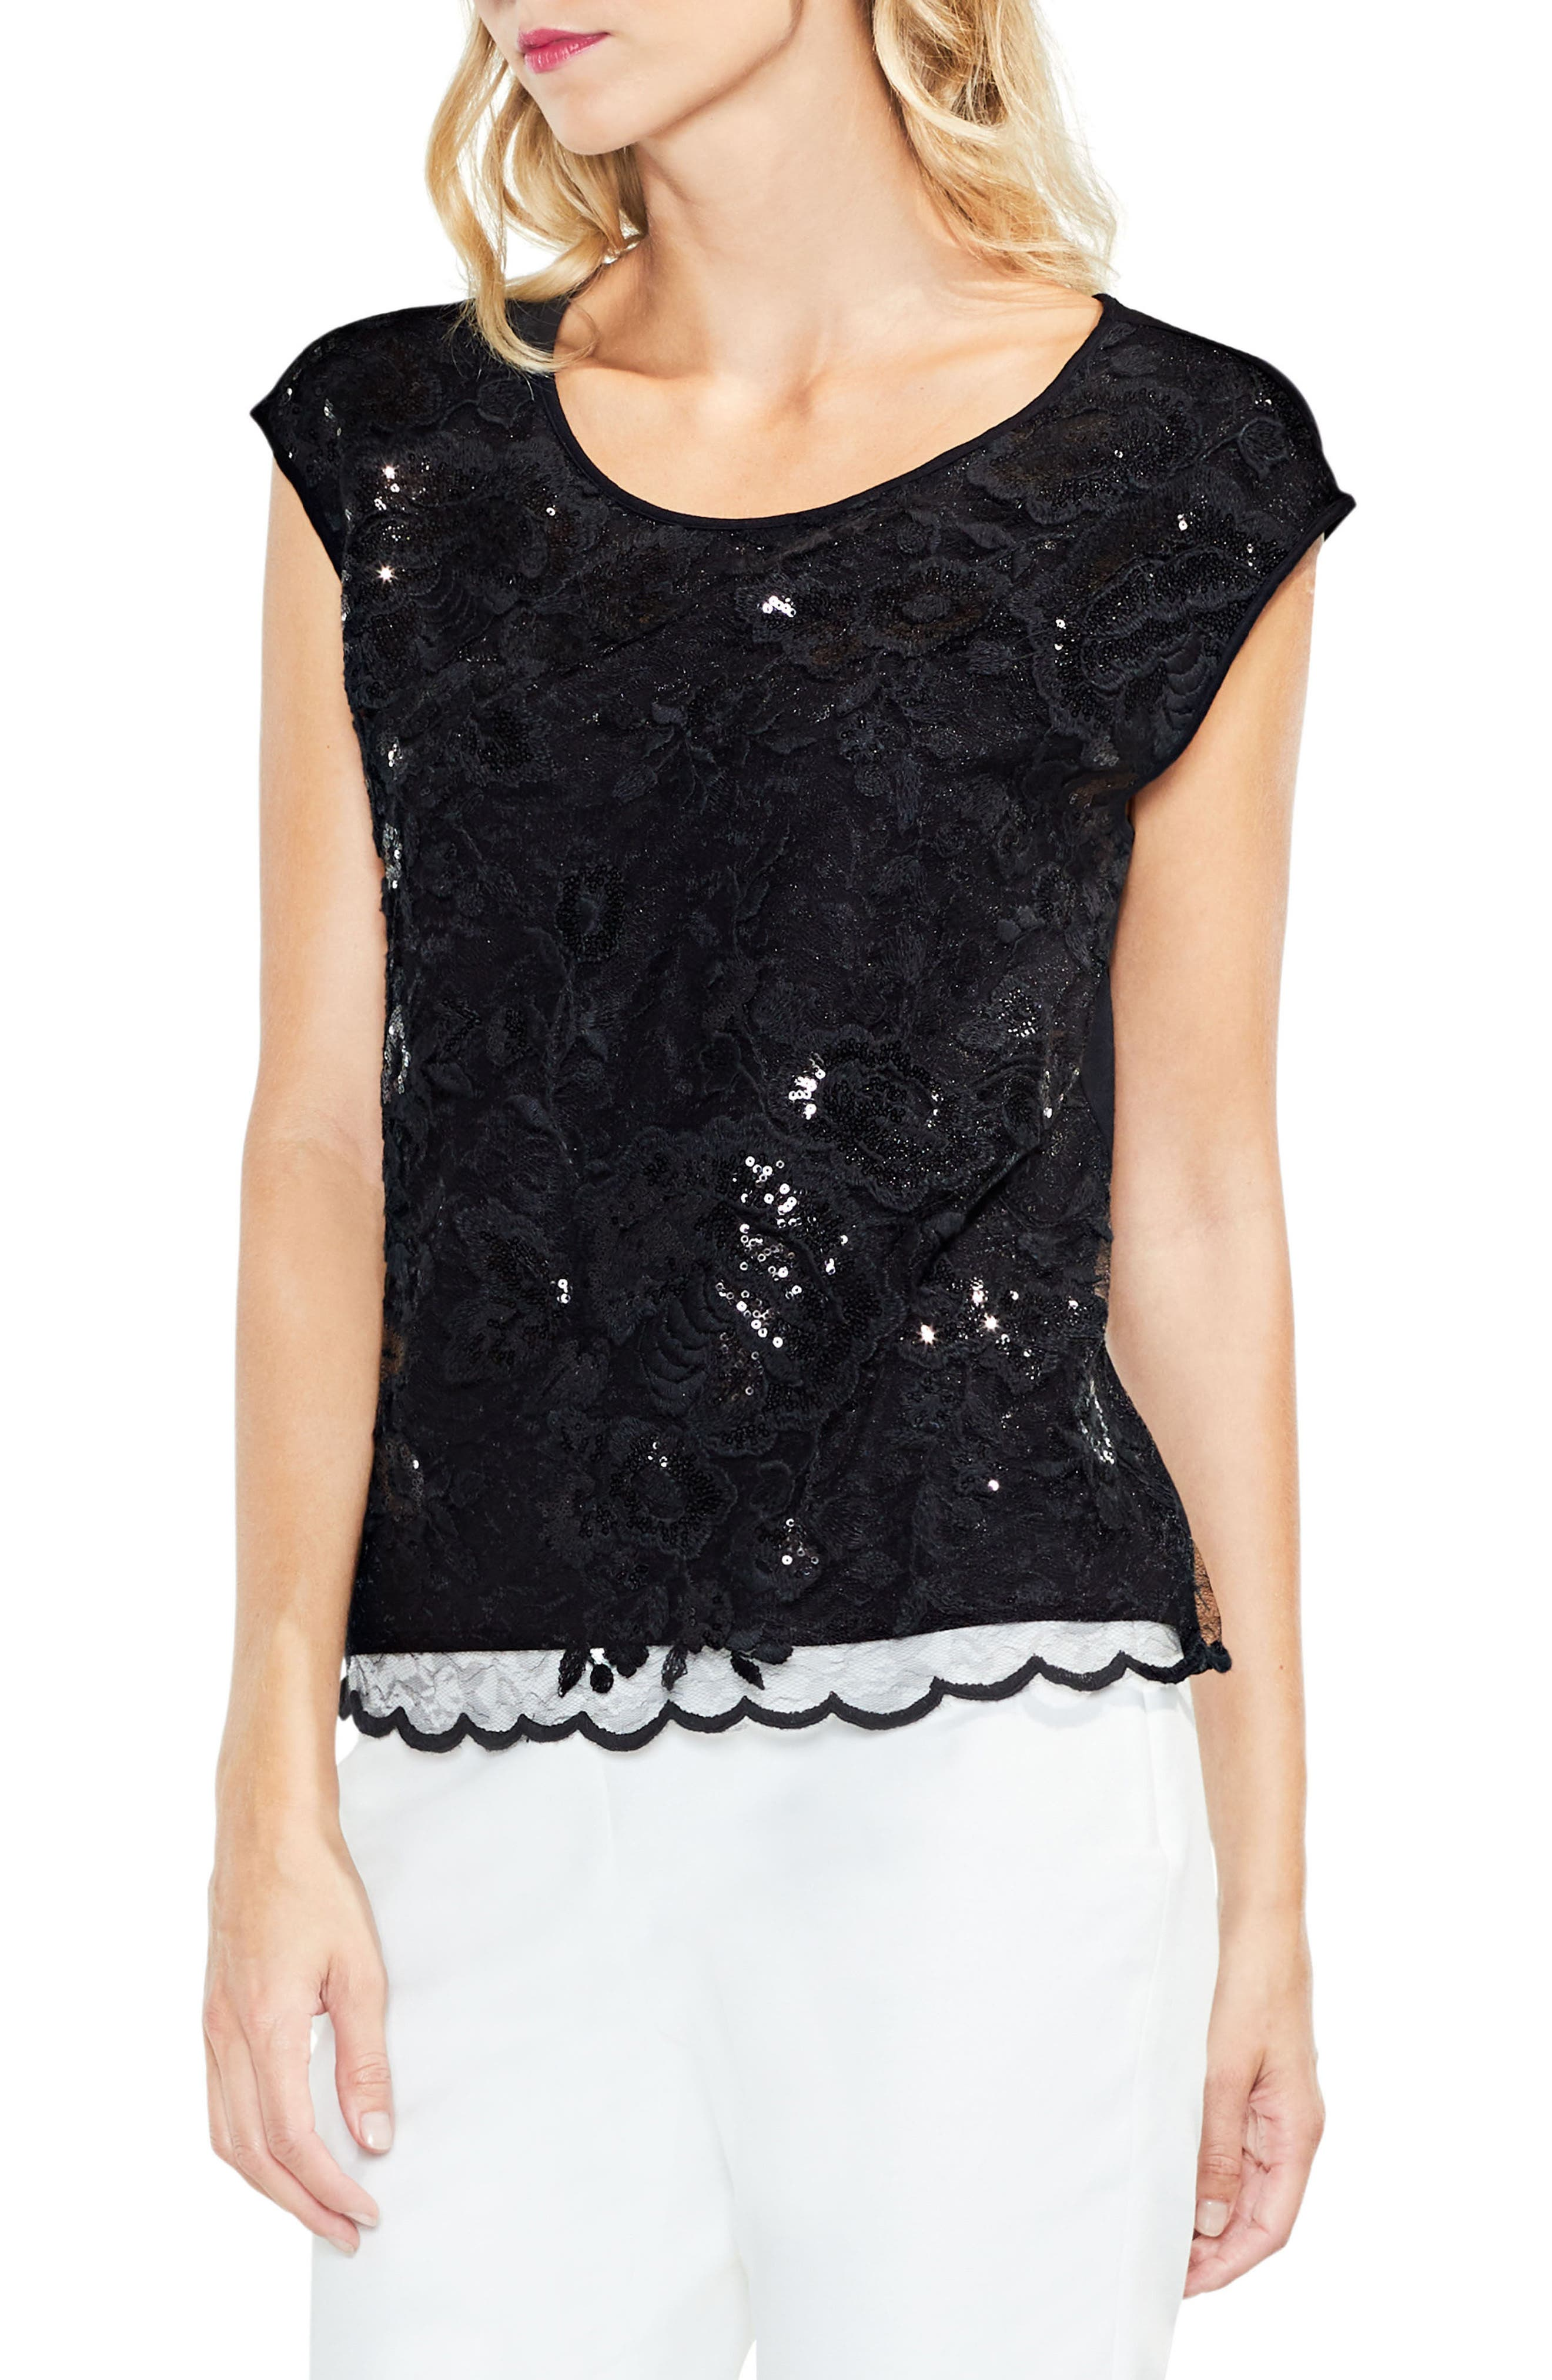 Main Image - Vince Camuto Sequin Lace Blouse